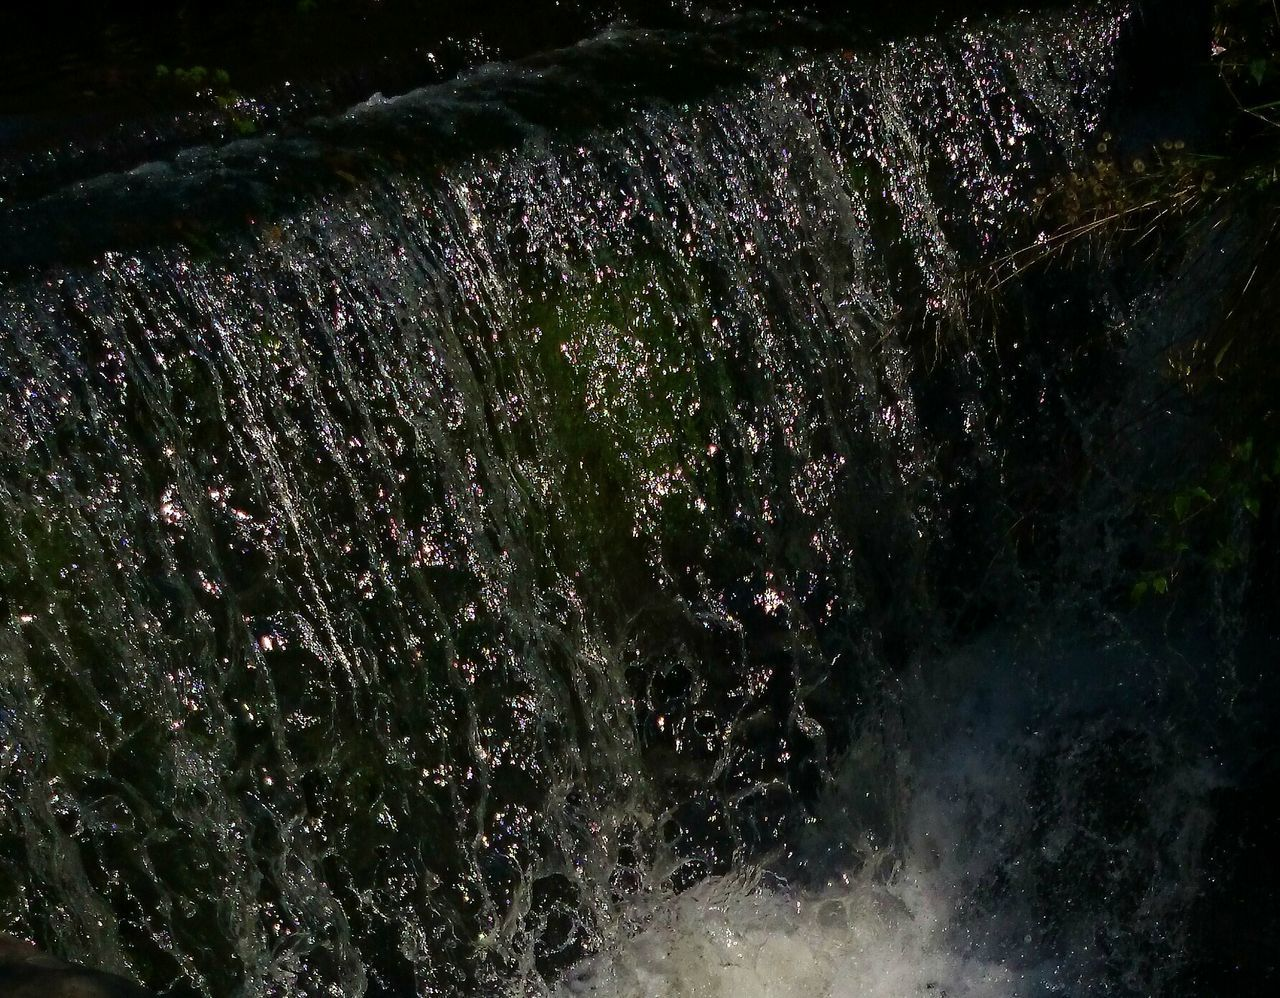 Waterfall Water Droplets Waterbrilliance Water Flowing Down Water Flow Water Crash Water Sparkle Glistening Beautiful Natural Power Of Water